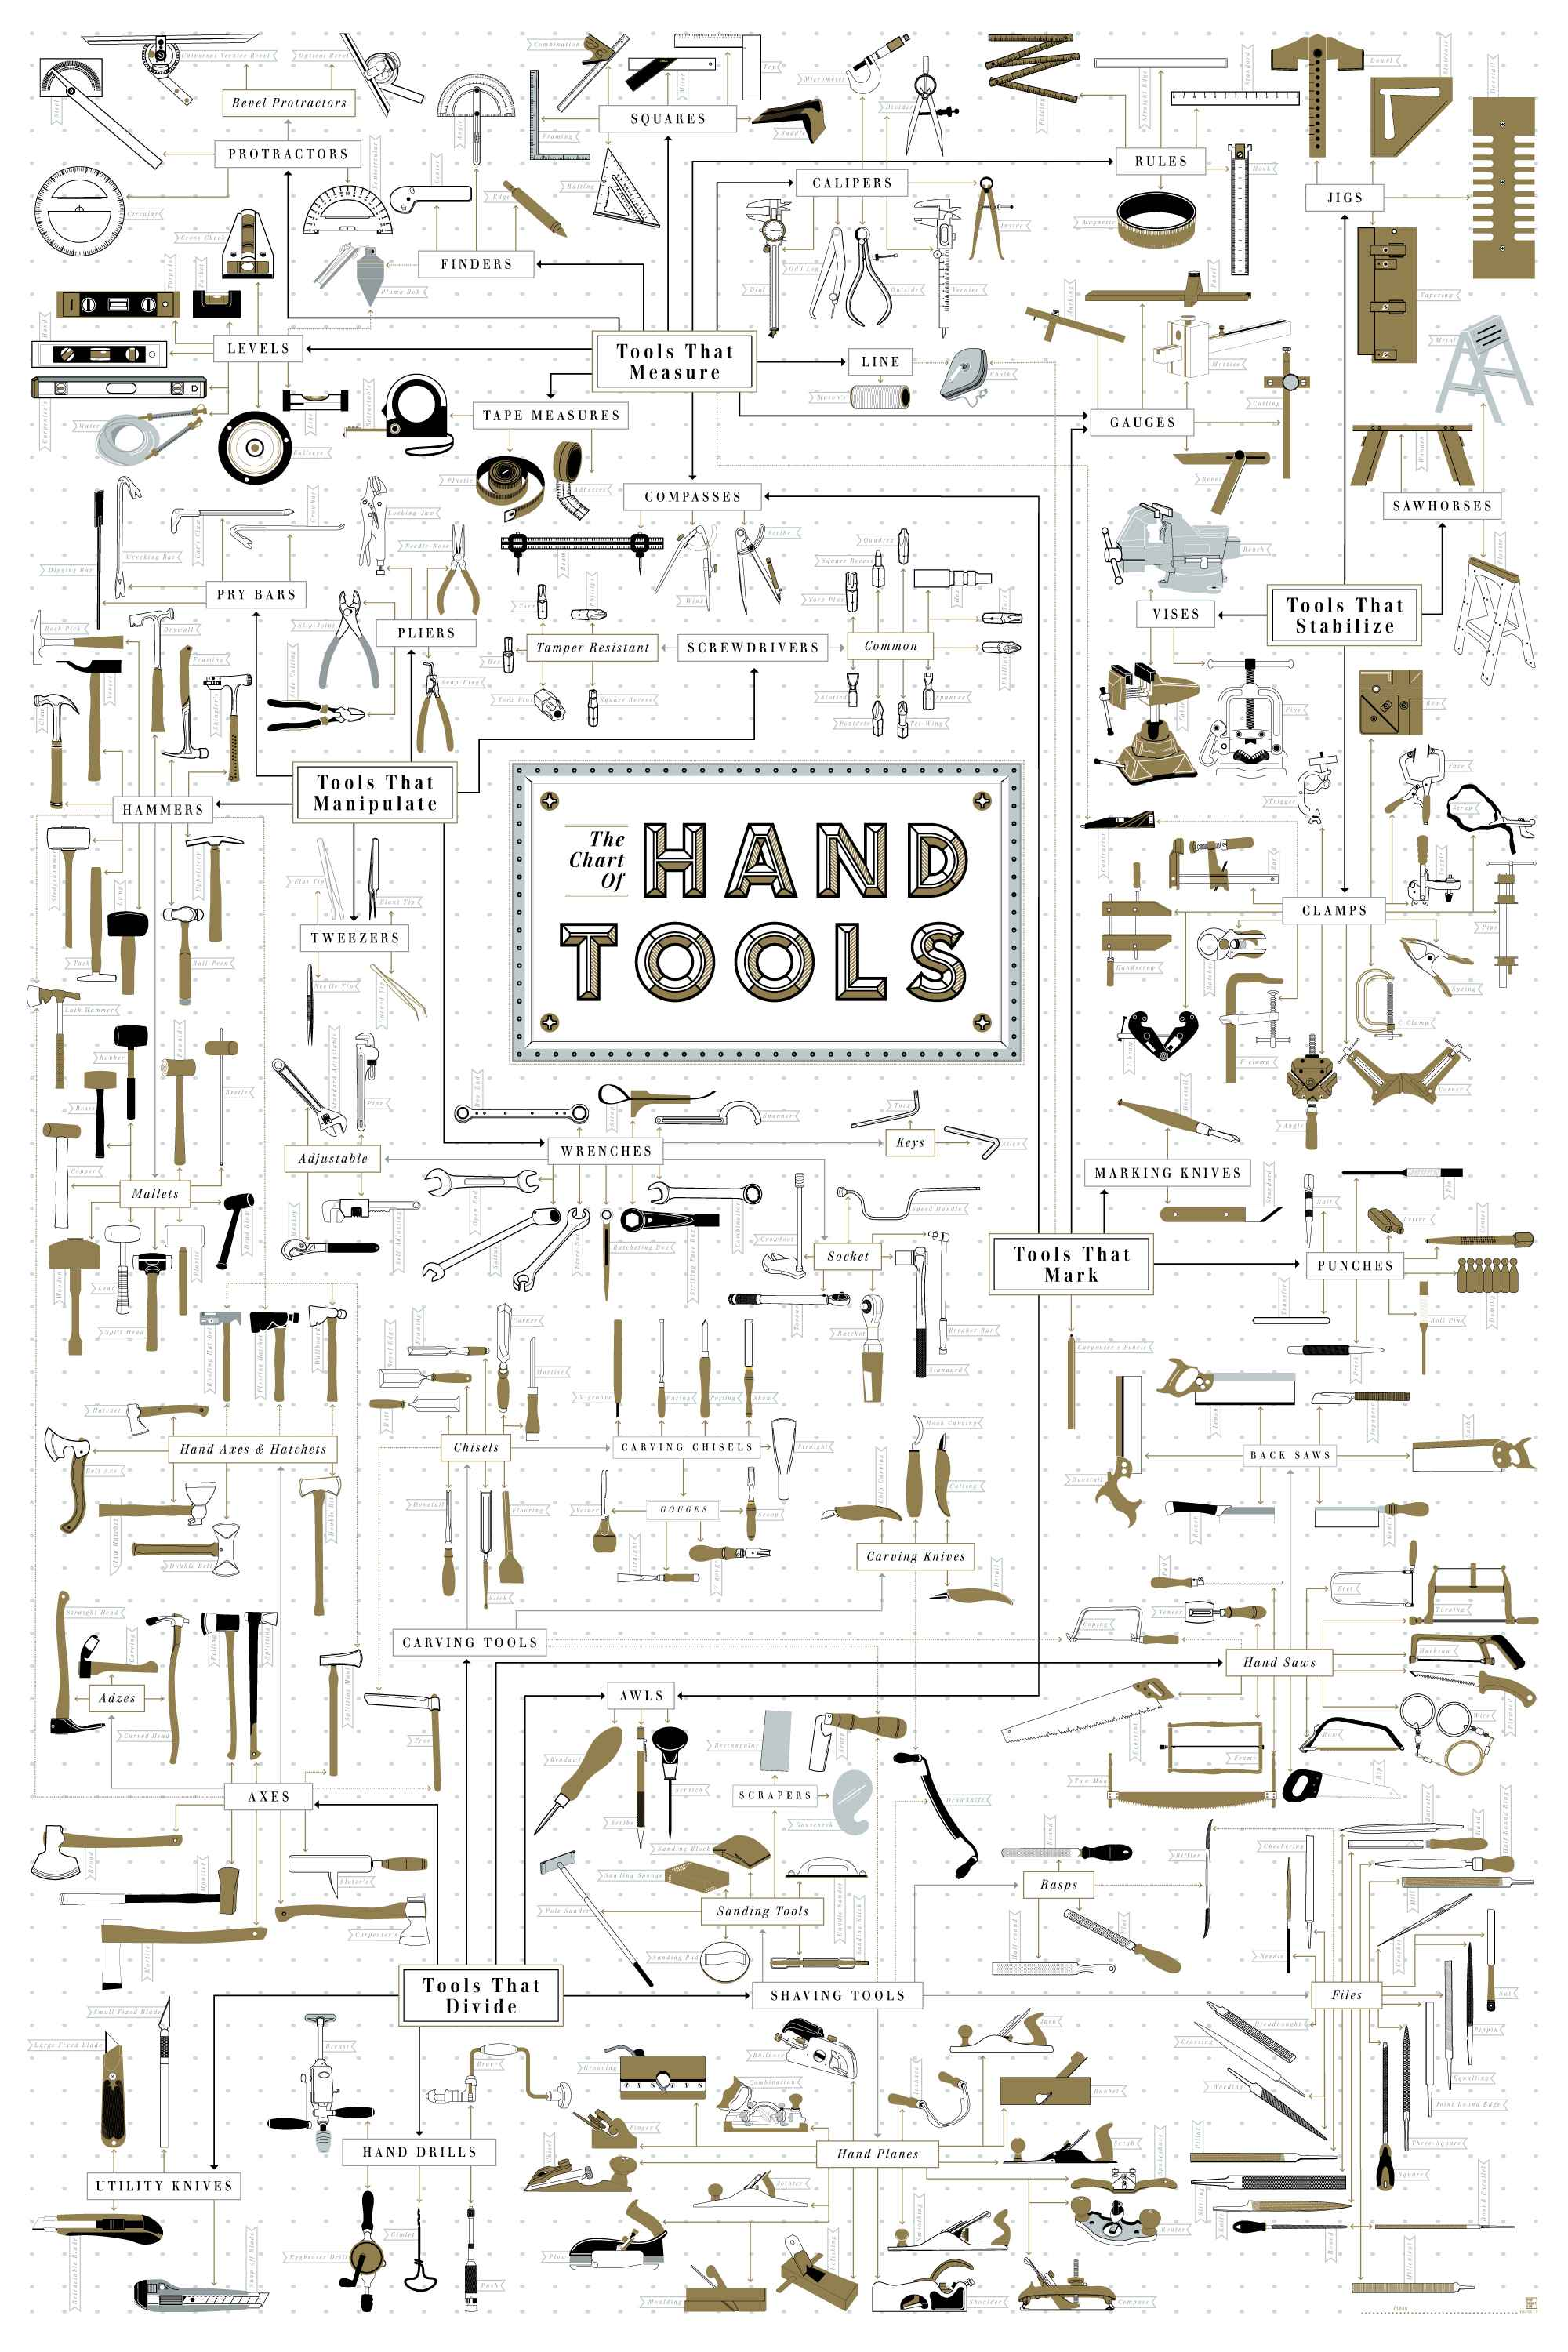 metalworking hand tools. metalworking hand tools